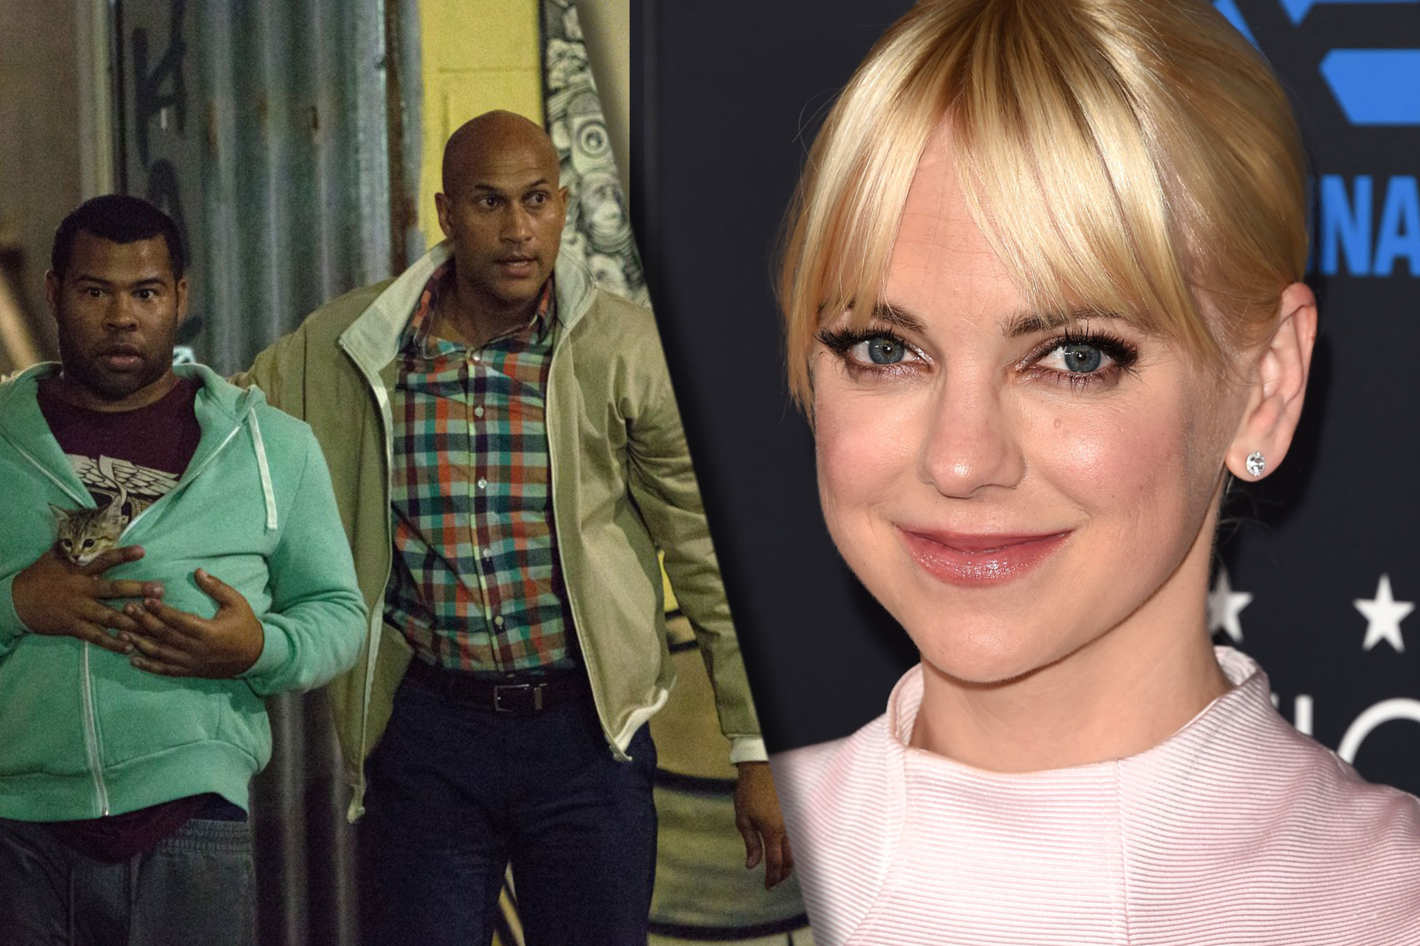 The Story Behind Keanus Hilarious Anna Faris Cameo